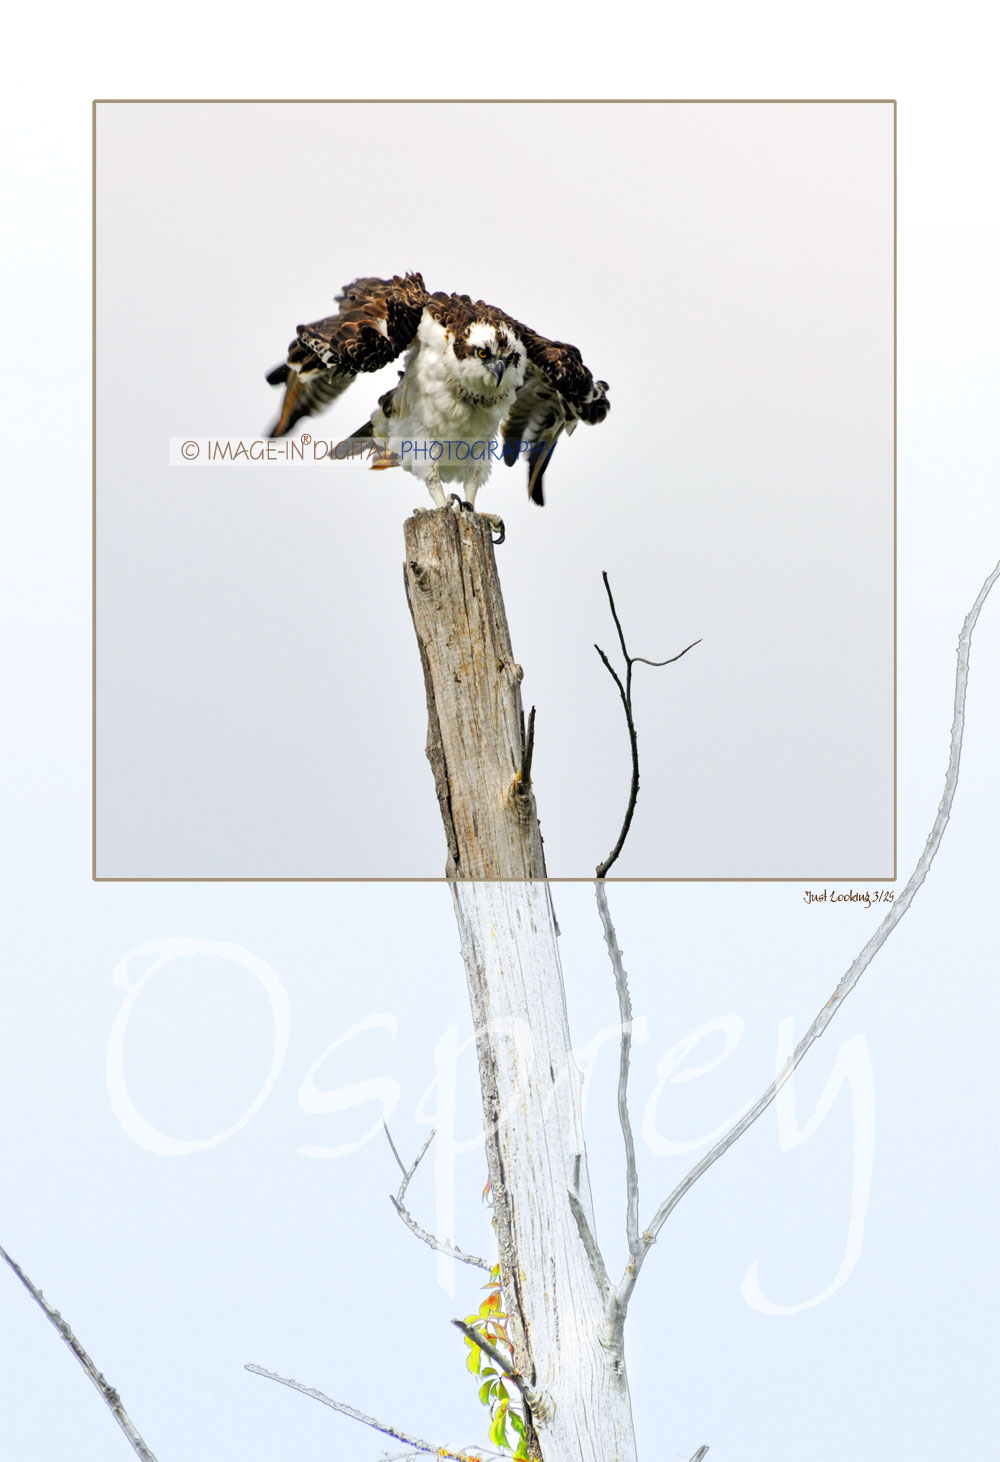 Just Looking (Osprey)